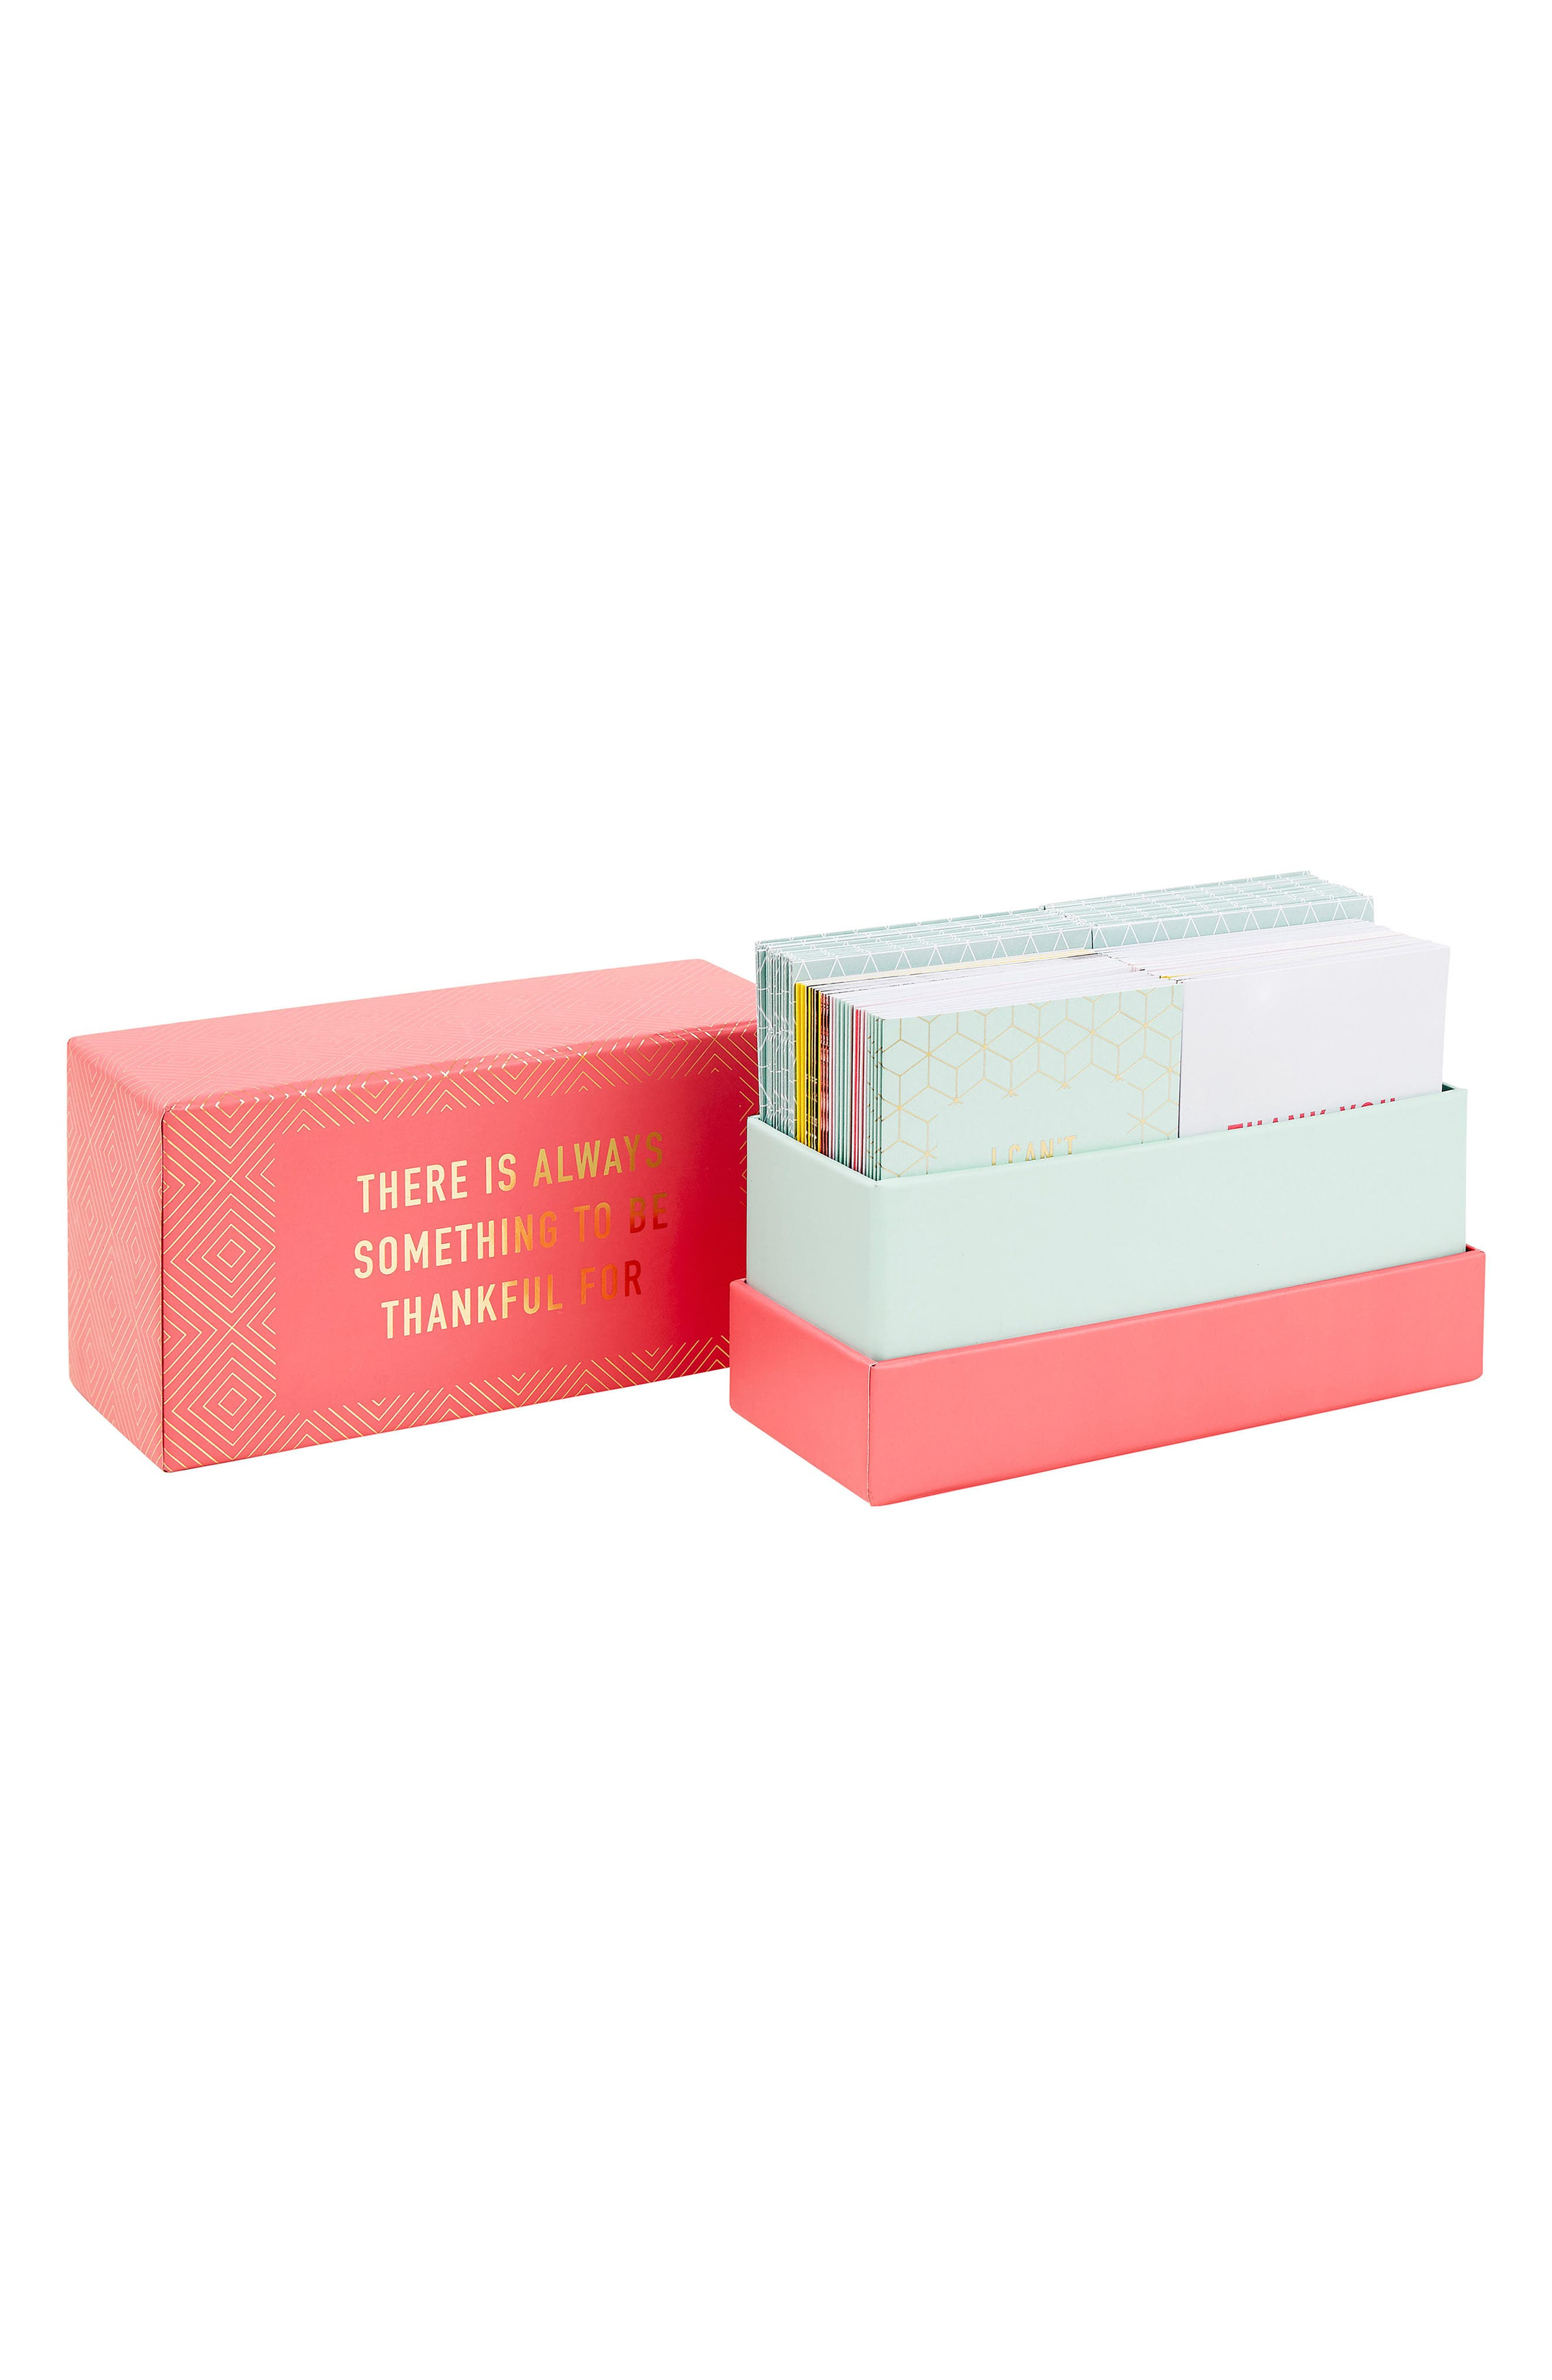 52 Inspirational Cards Box Set,                             Alternate thumbnail 2, color,                             650